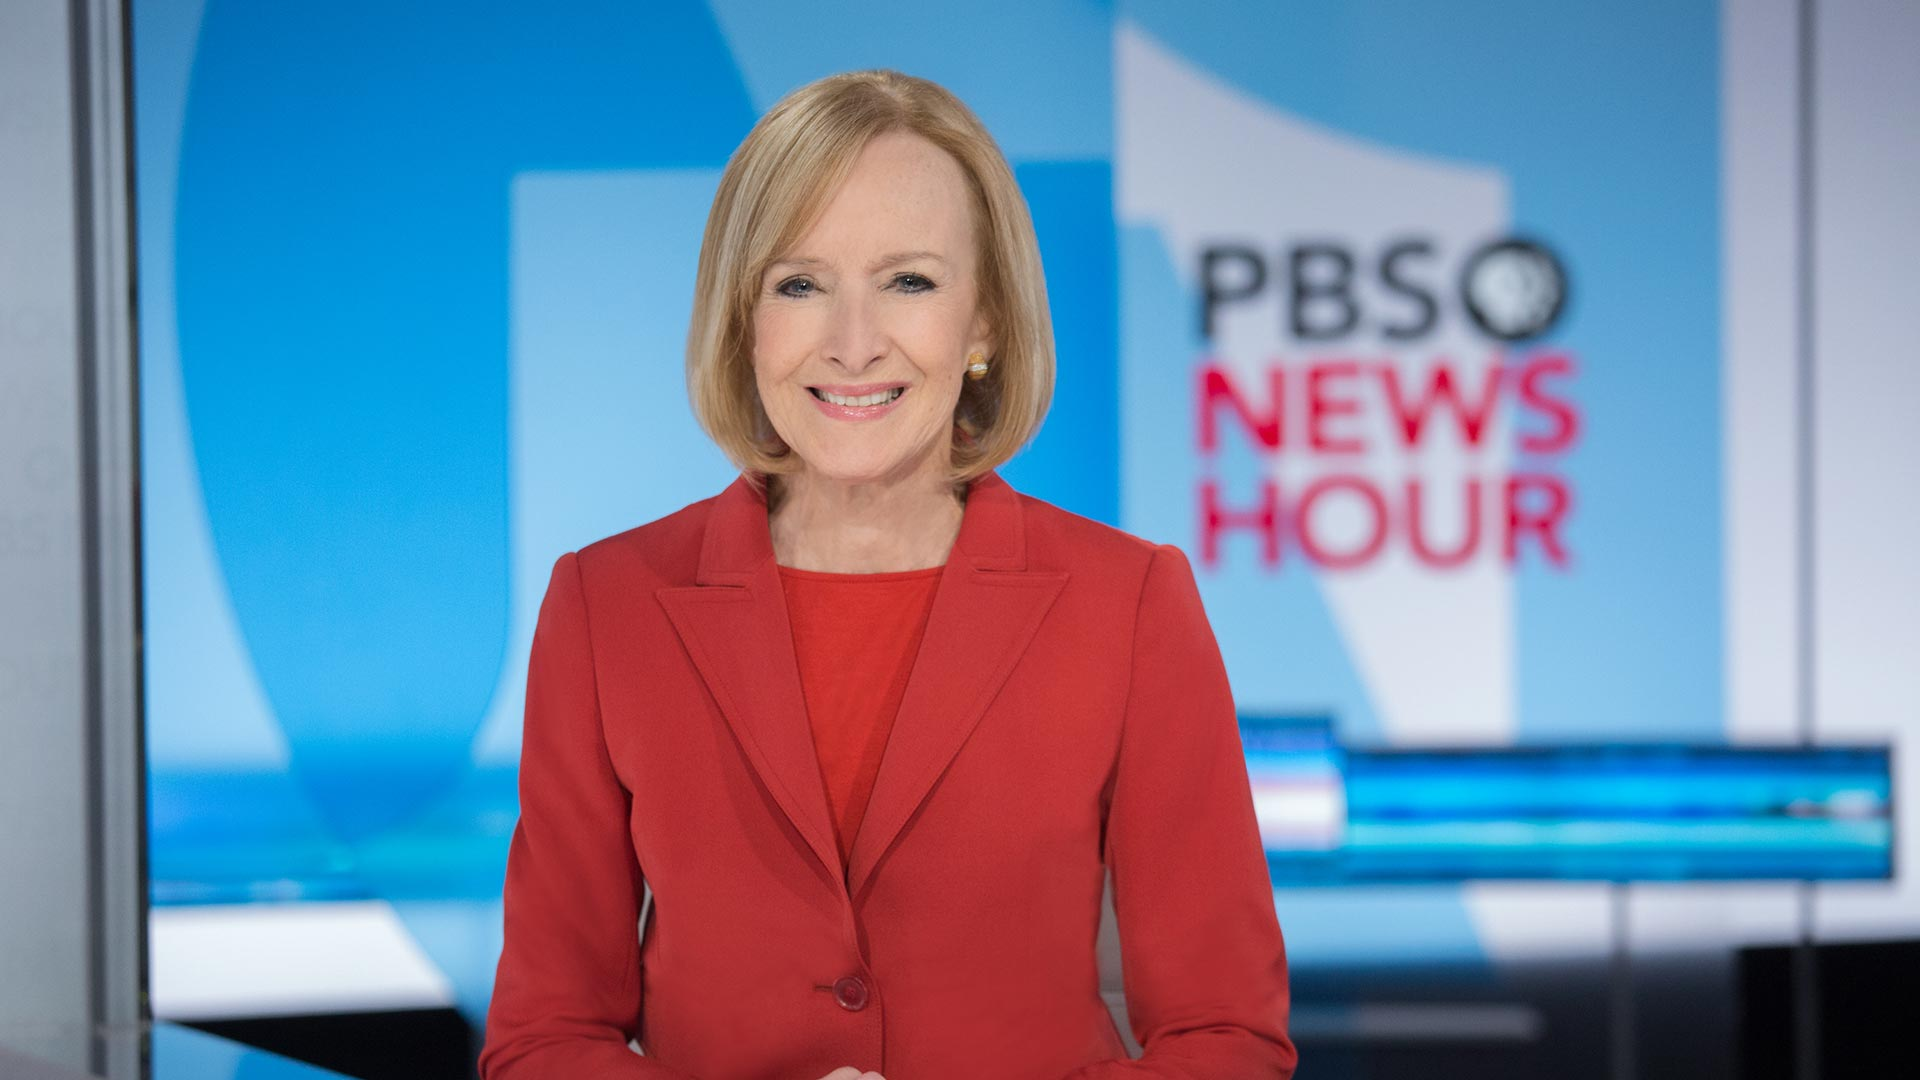 Anchored by managing editor Judy Woodruff, PBS NEWSHOUR provides in-depth analysis of current events with a team of seasoned and highly regarded journalists.